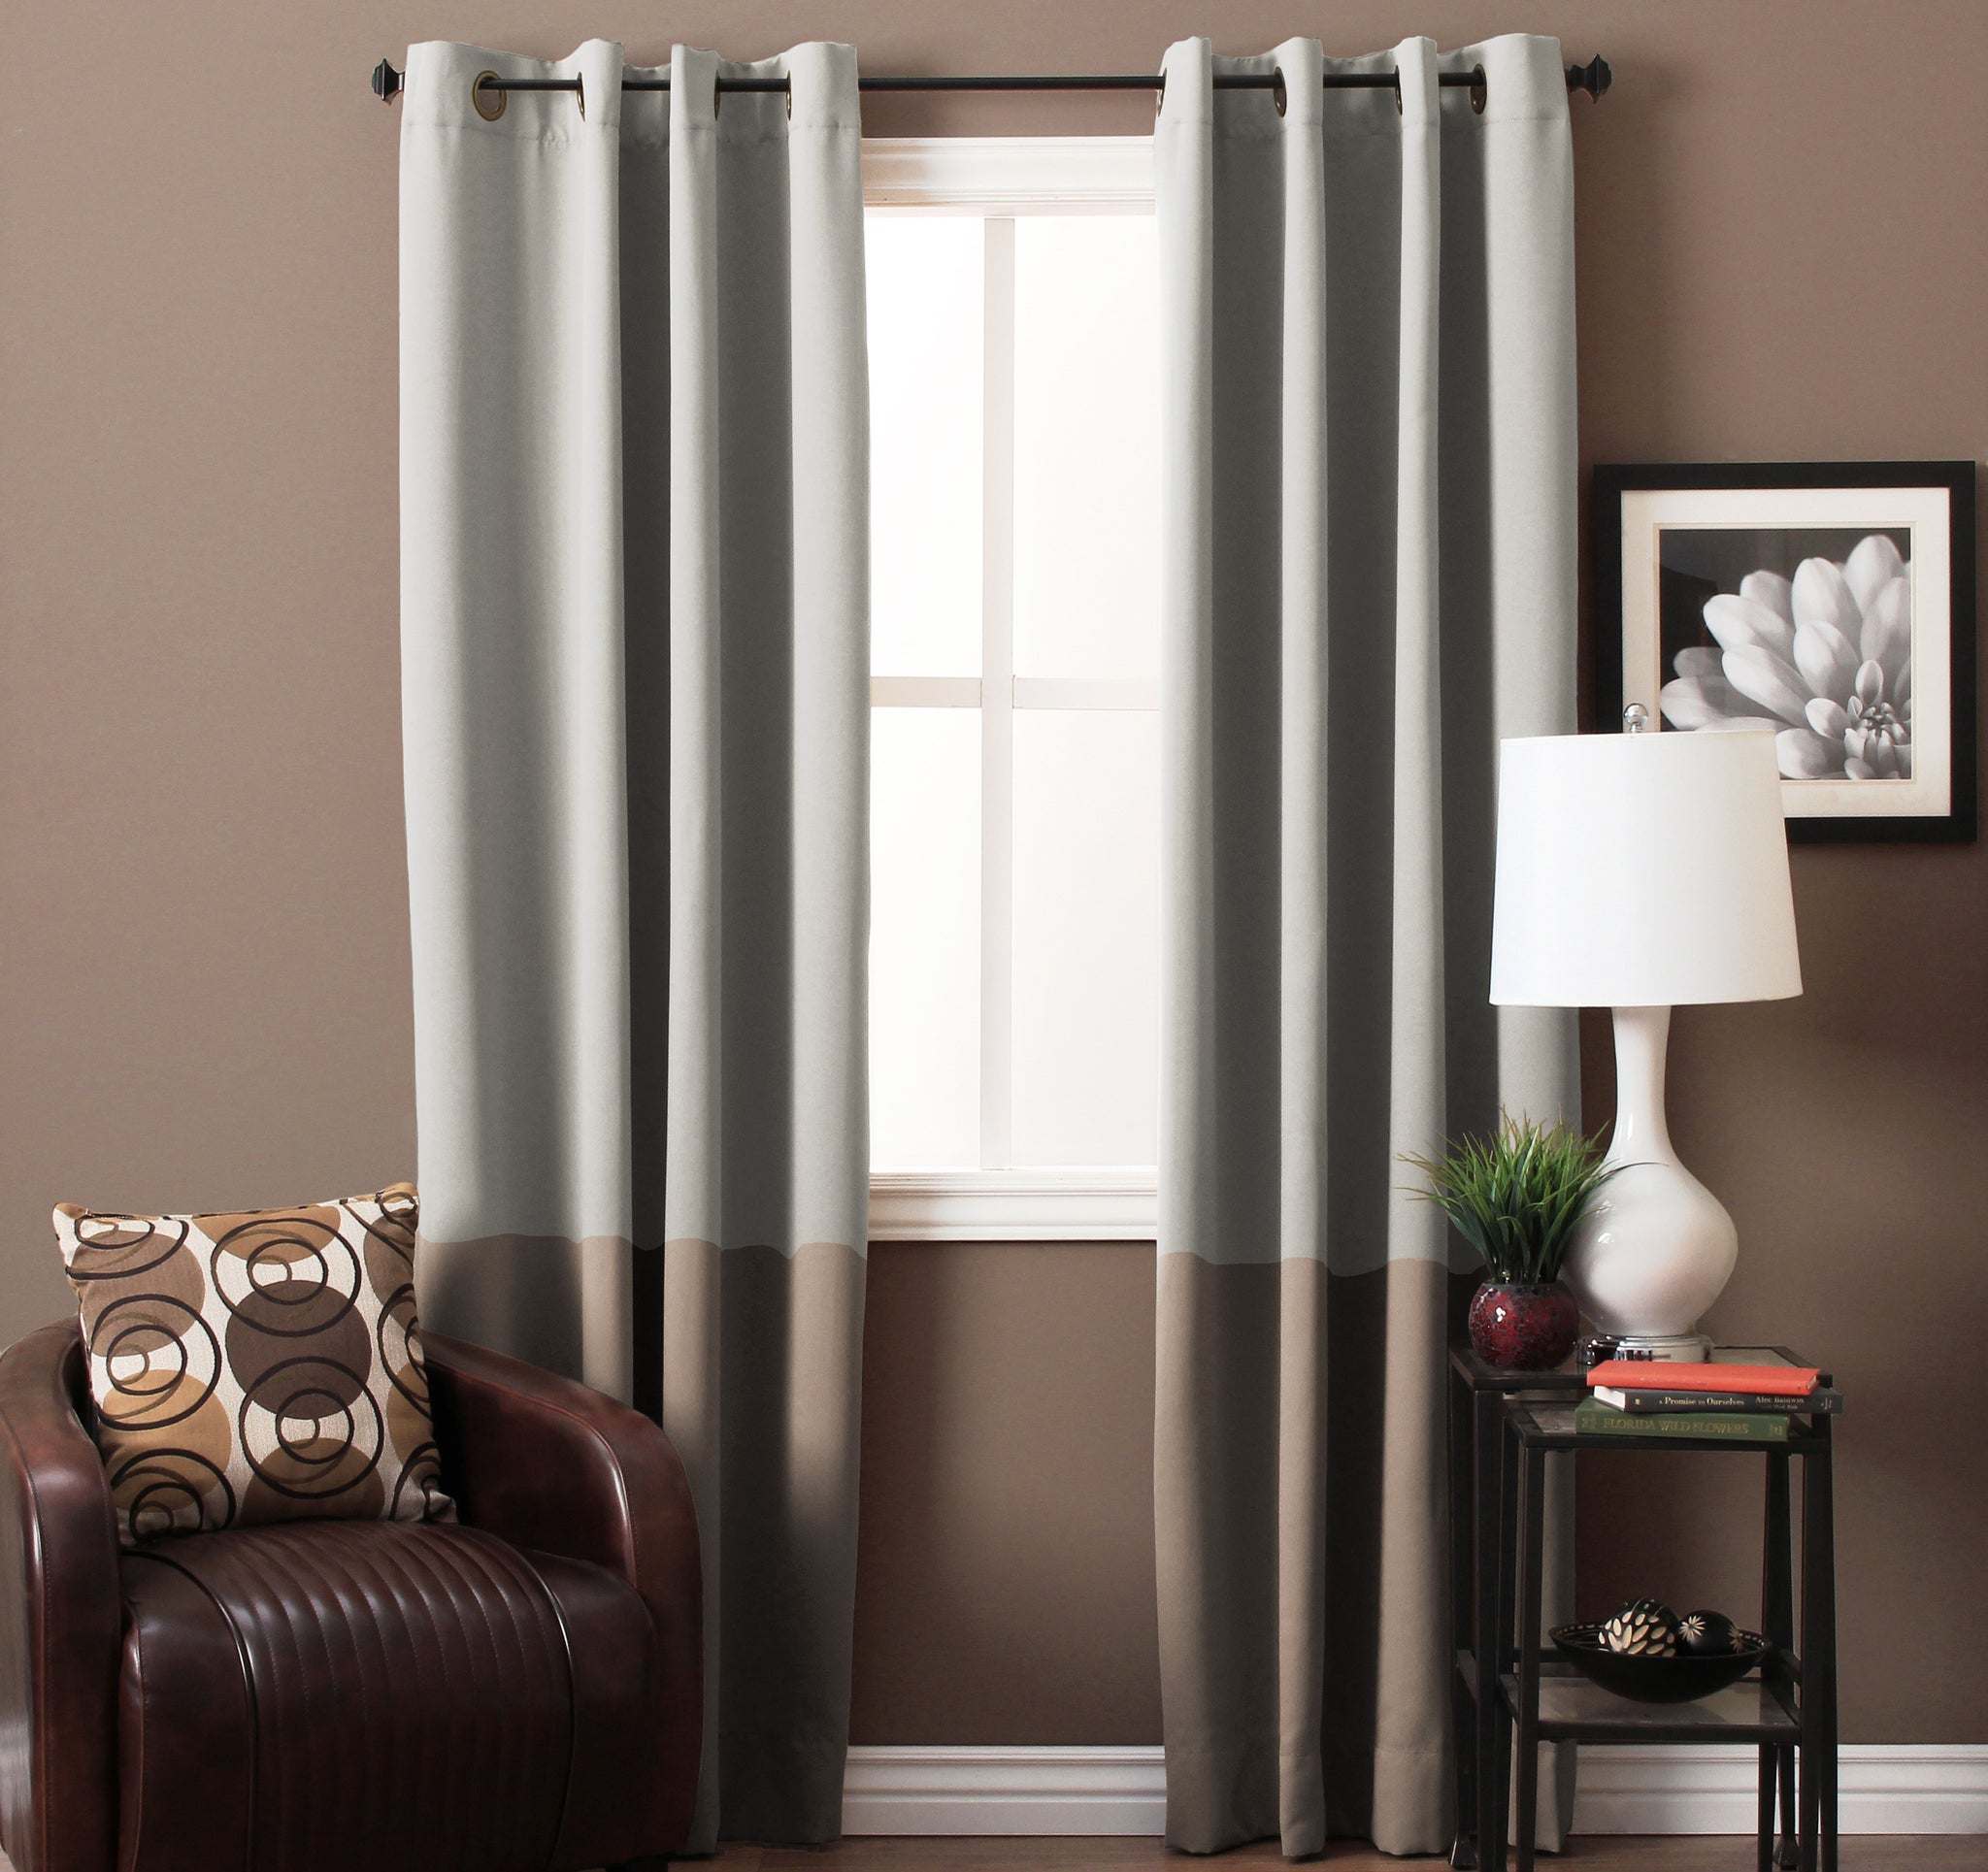 panel sun pdx curtains solid curtain thermal treatments single grommet zero insulated window room cooper wayfair textured reviews darkening